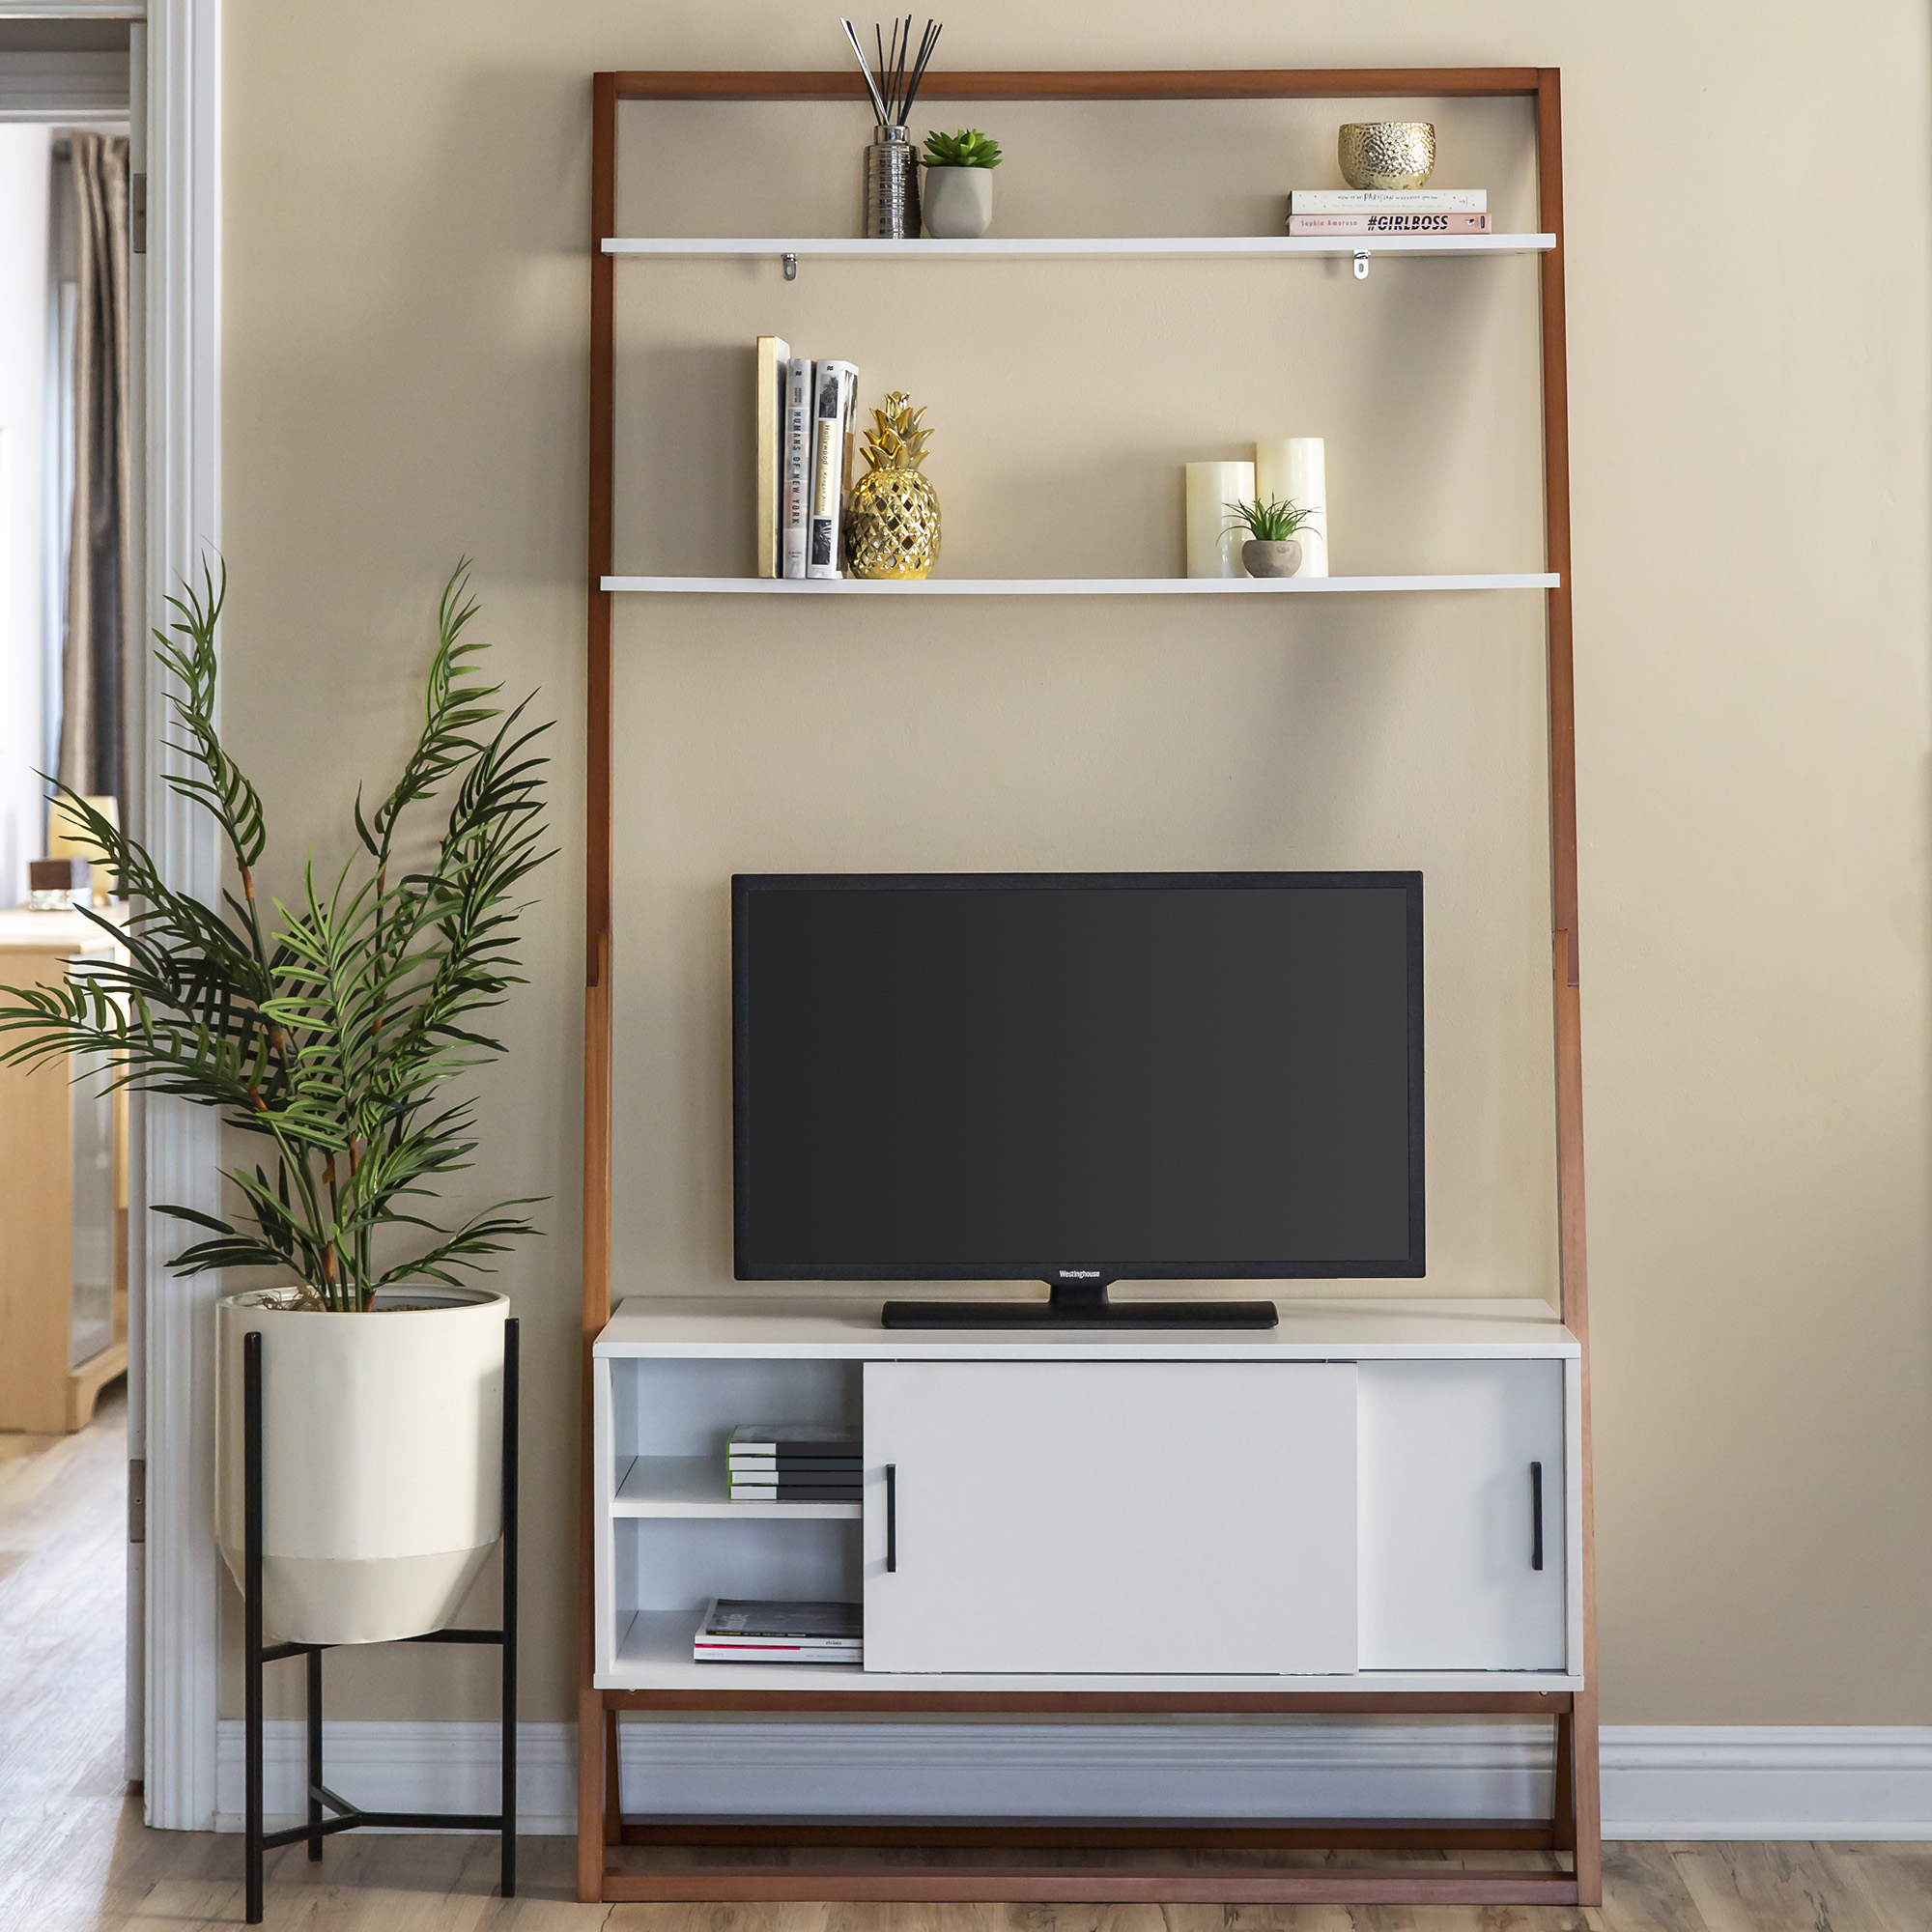 Best Choice Products 42in Modern Wooden Ladder Shelf TV Stand Entertainment Center Media Console w/ 2 Shelves, Sliding Door Storage Cabinet - White